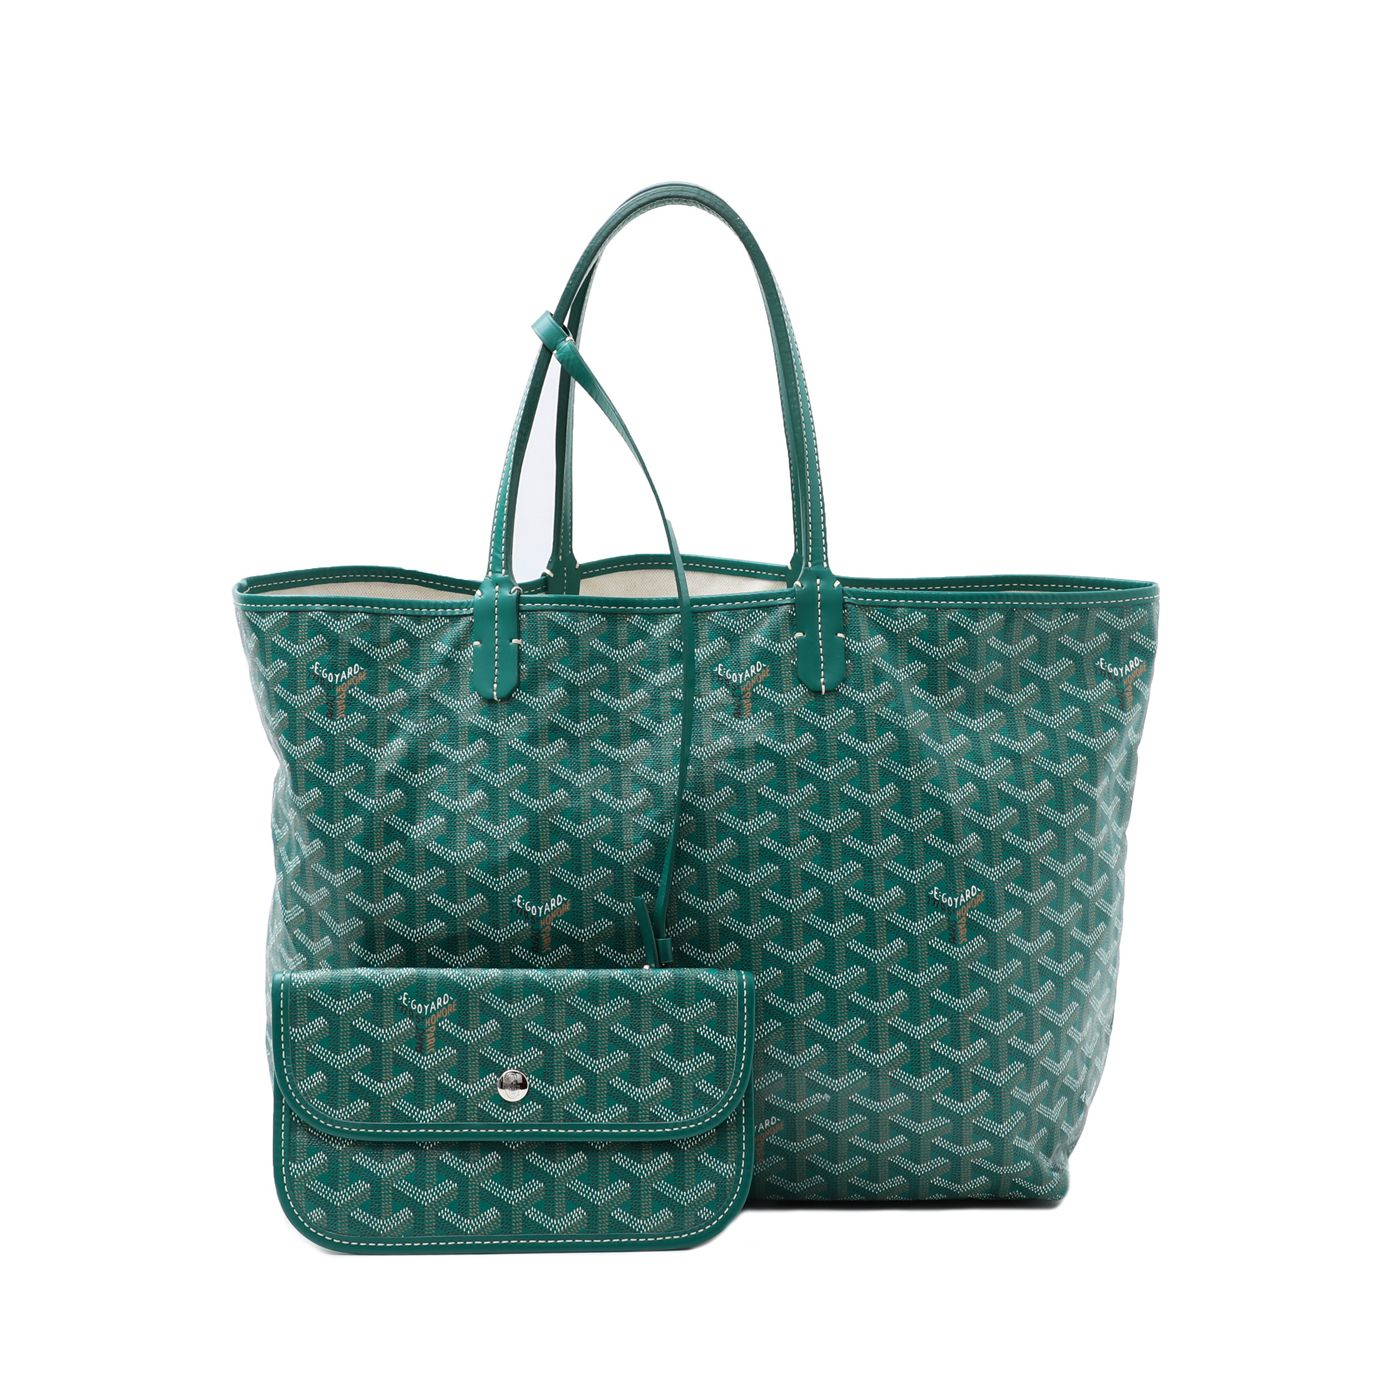 Goyard Green Saint Louis Tote Bag